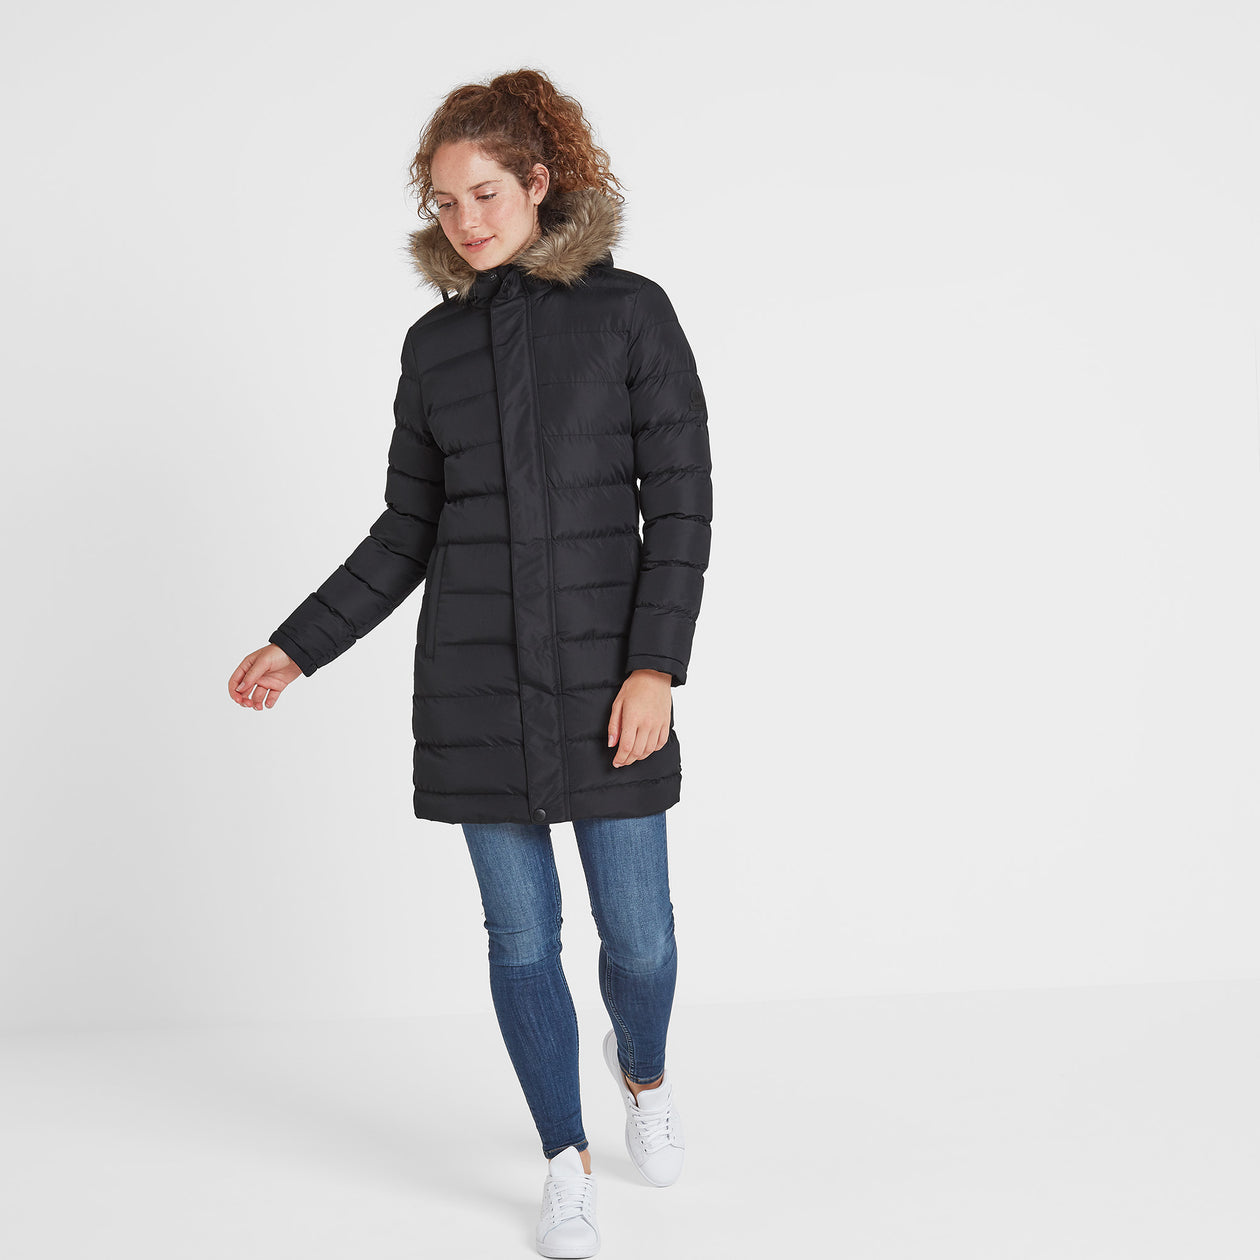 Yeadon Womens Long Insulated Jacket - Black image 4